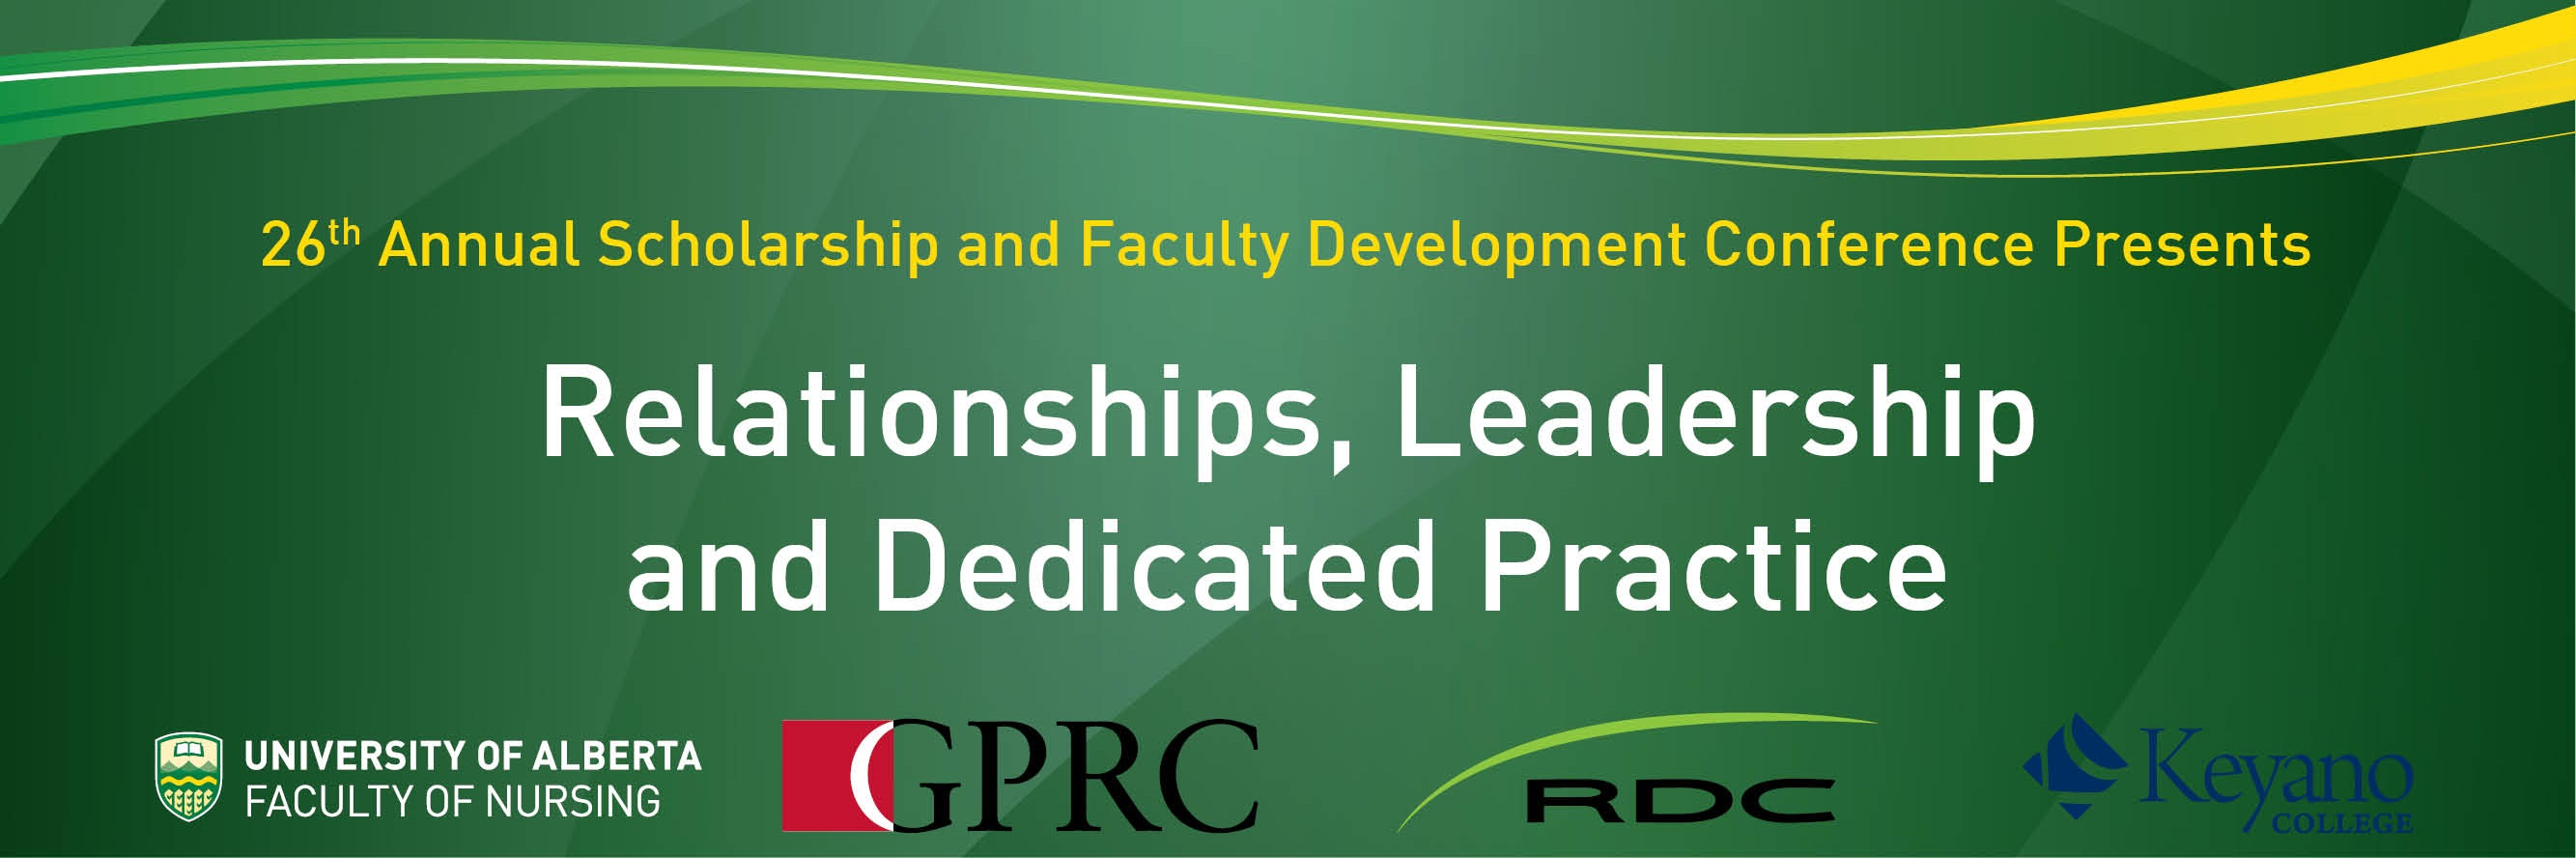 2017 Scholarship and Faculty Development Conference